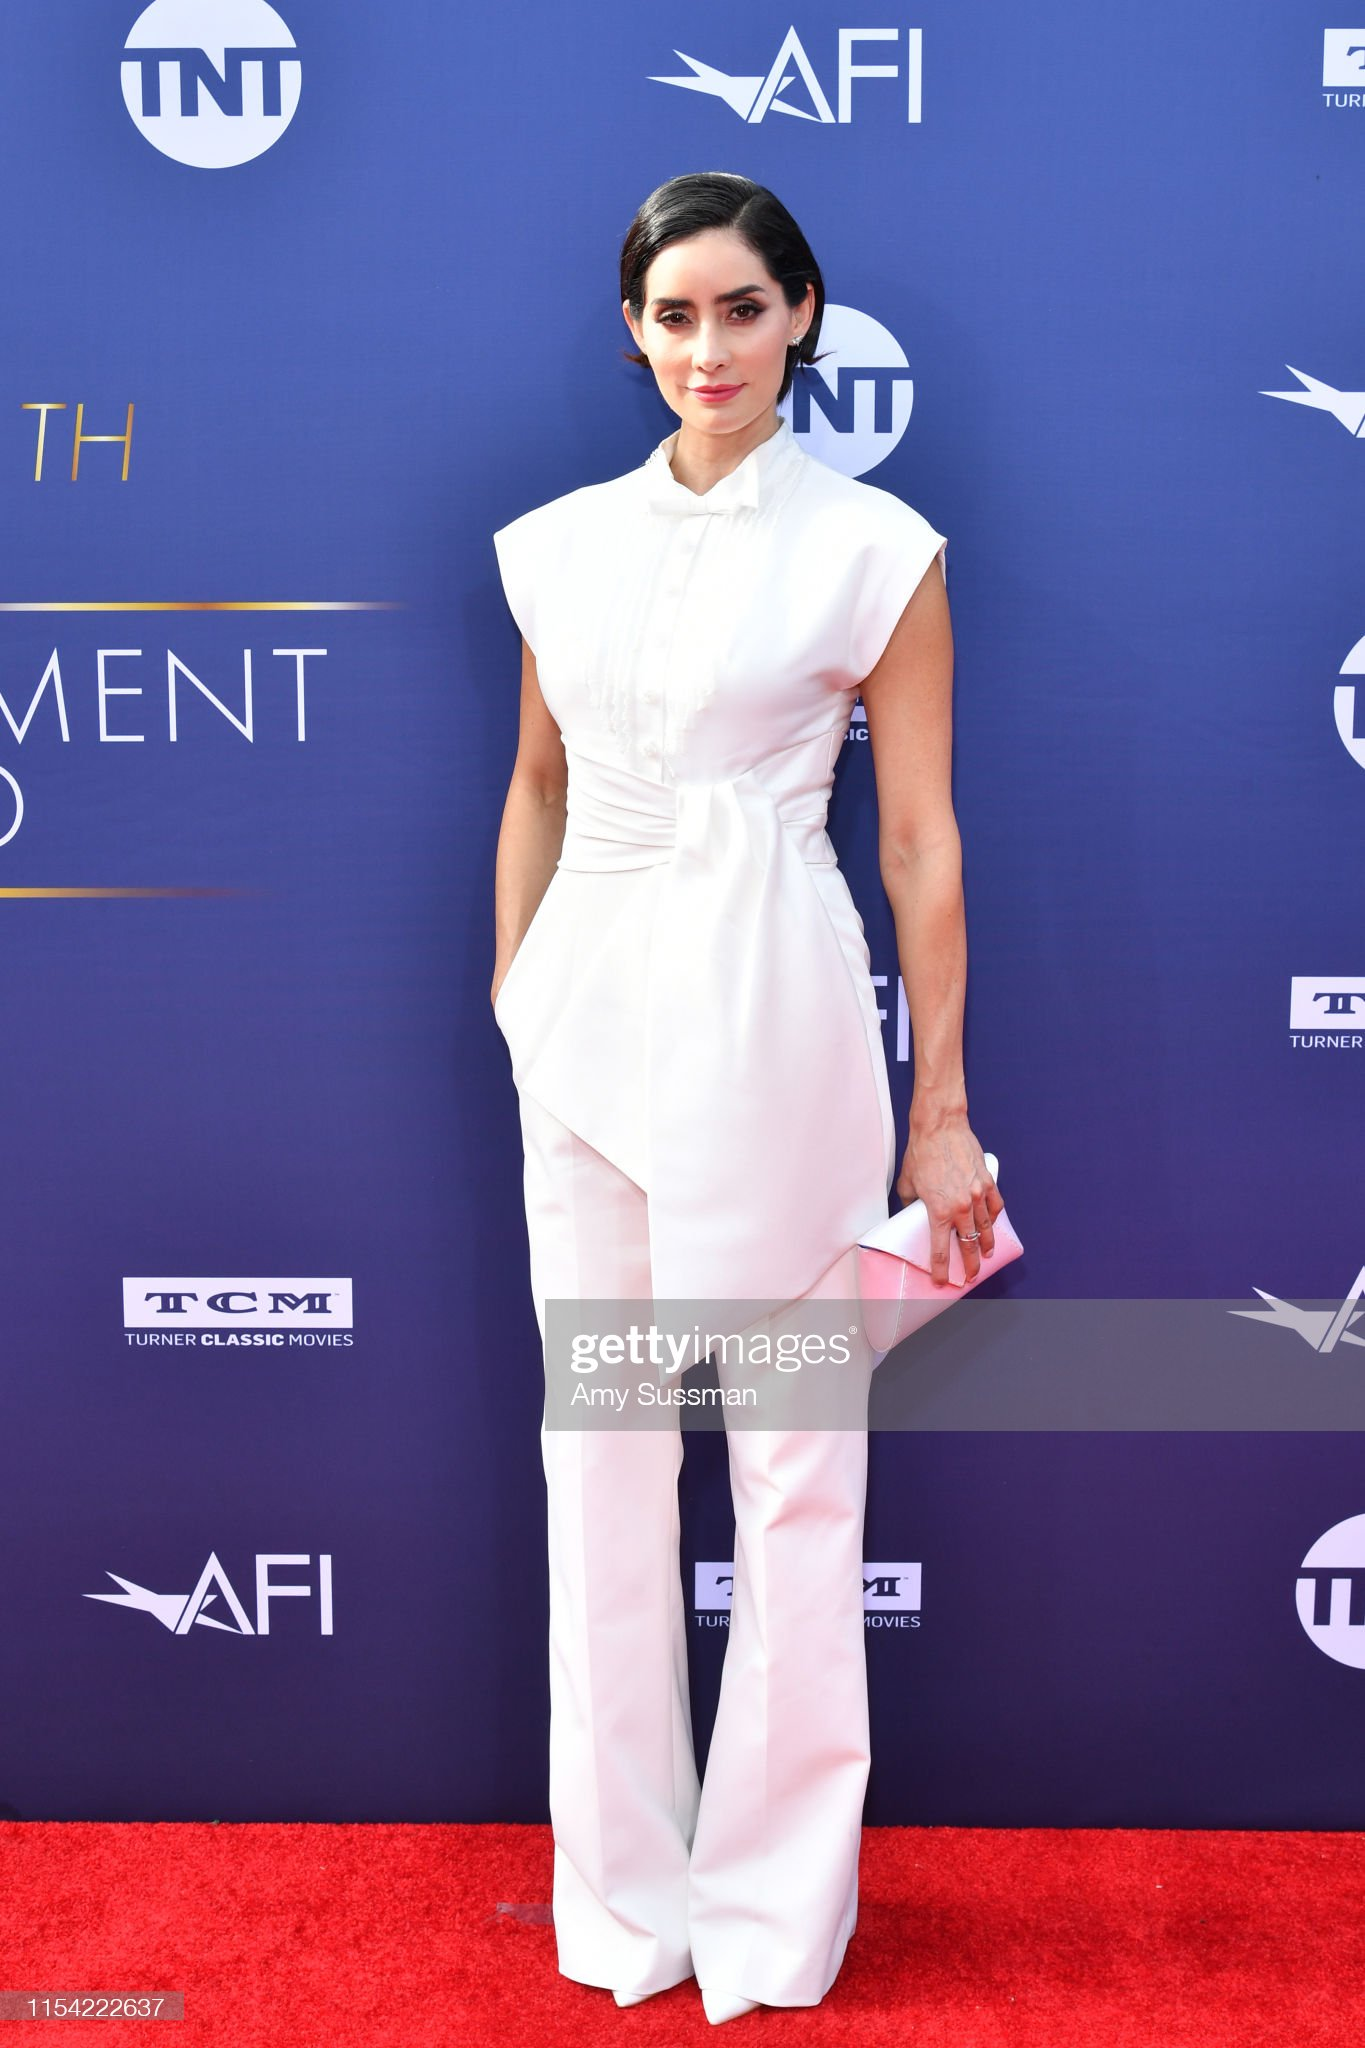 https://media.gettyimages.com/photos/paola-nez-attends-the-47th-afi-life-achievement-award-honoring-denzel-picture-id1154222637?s=2048x2048